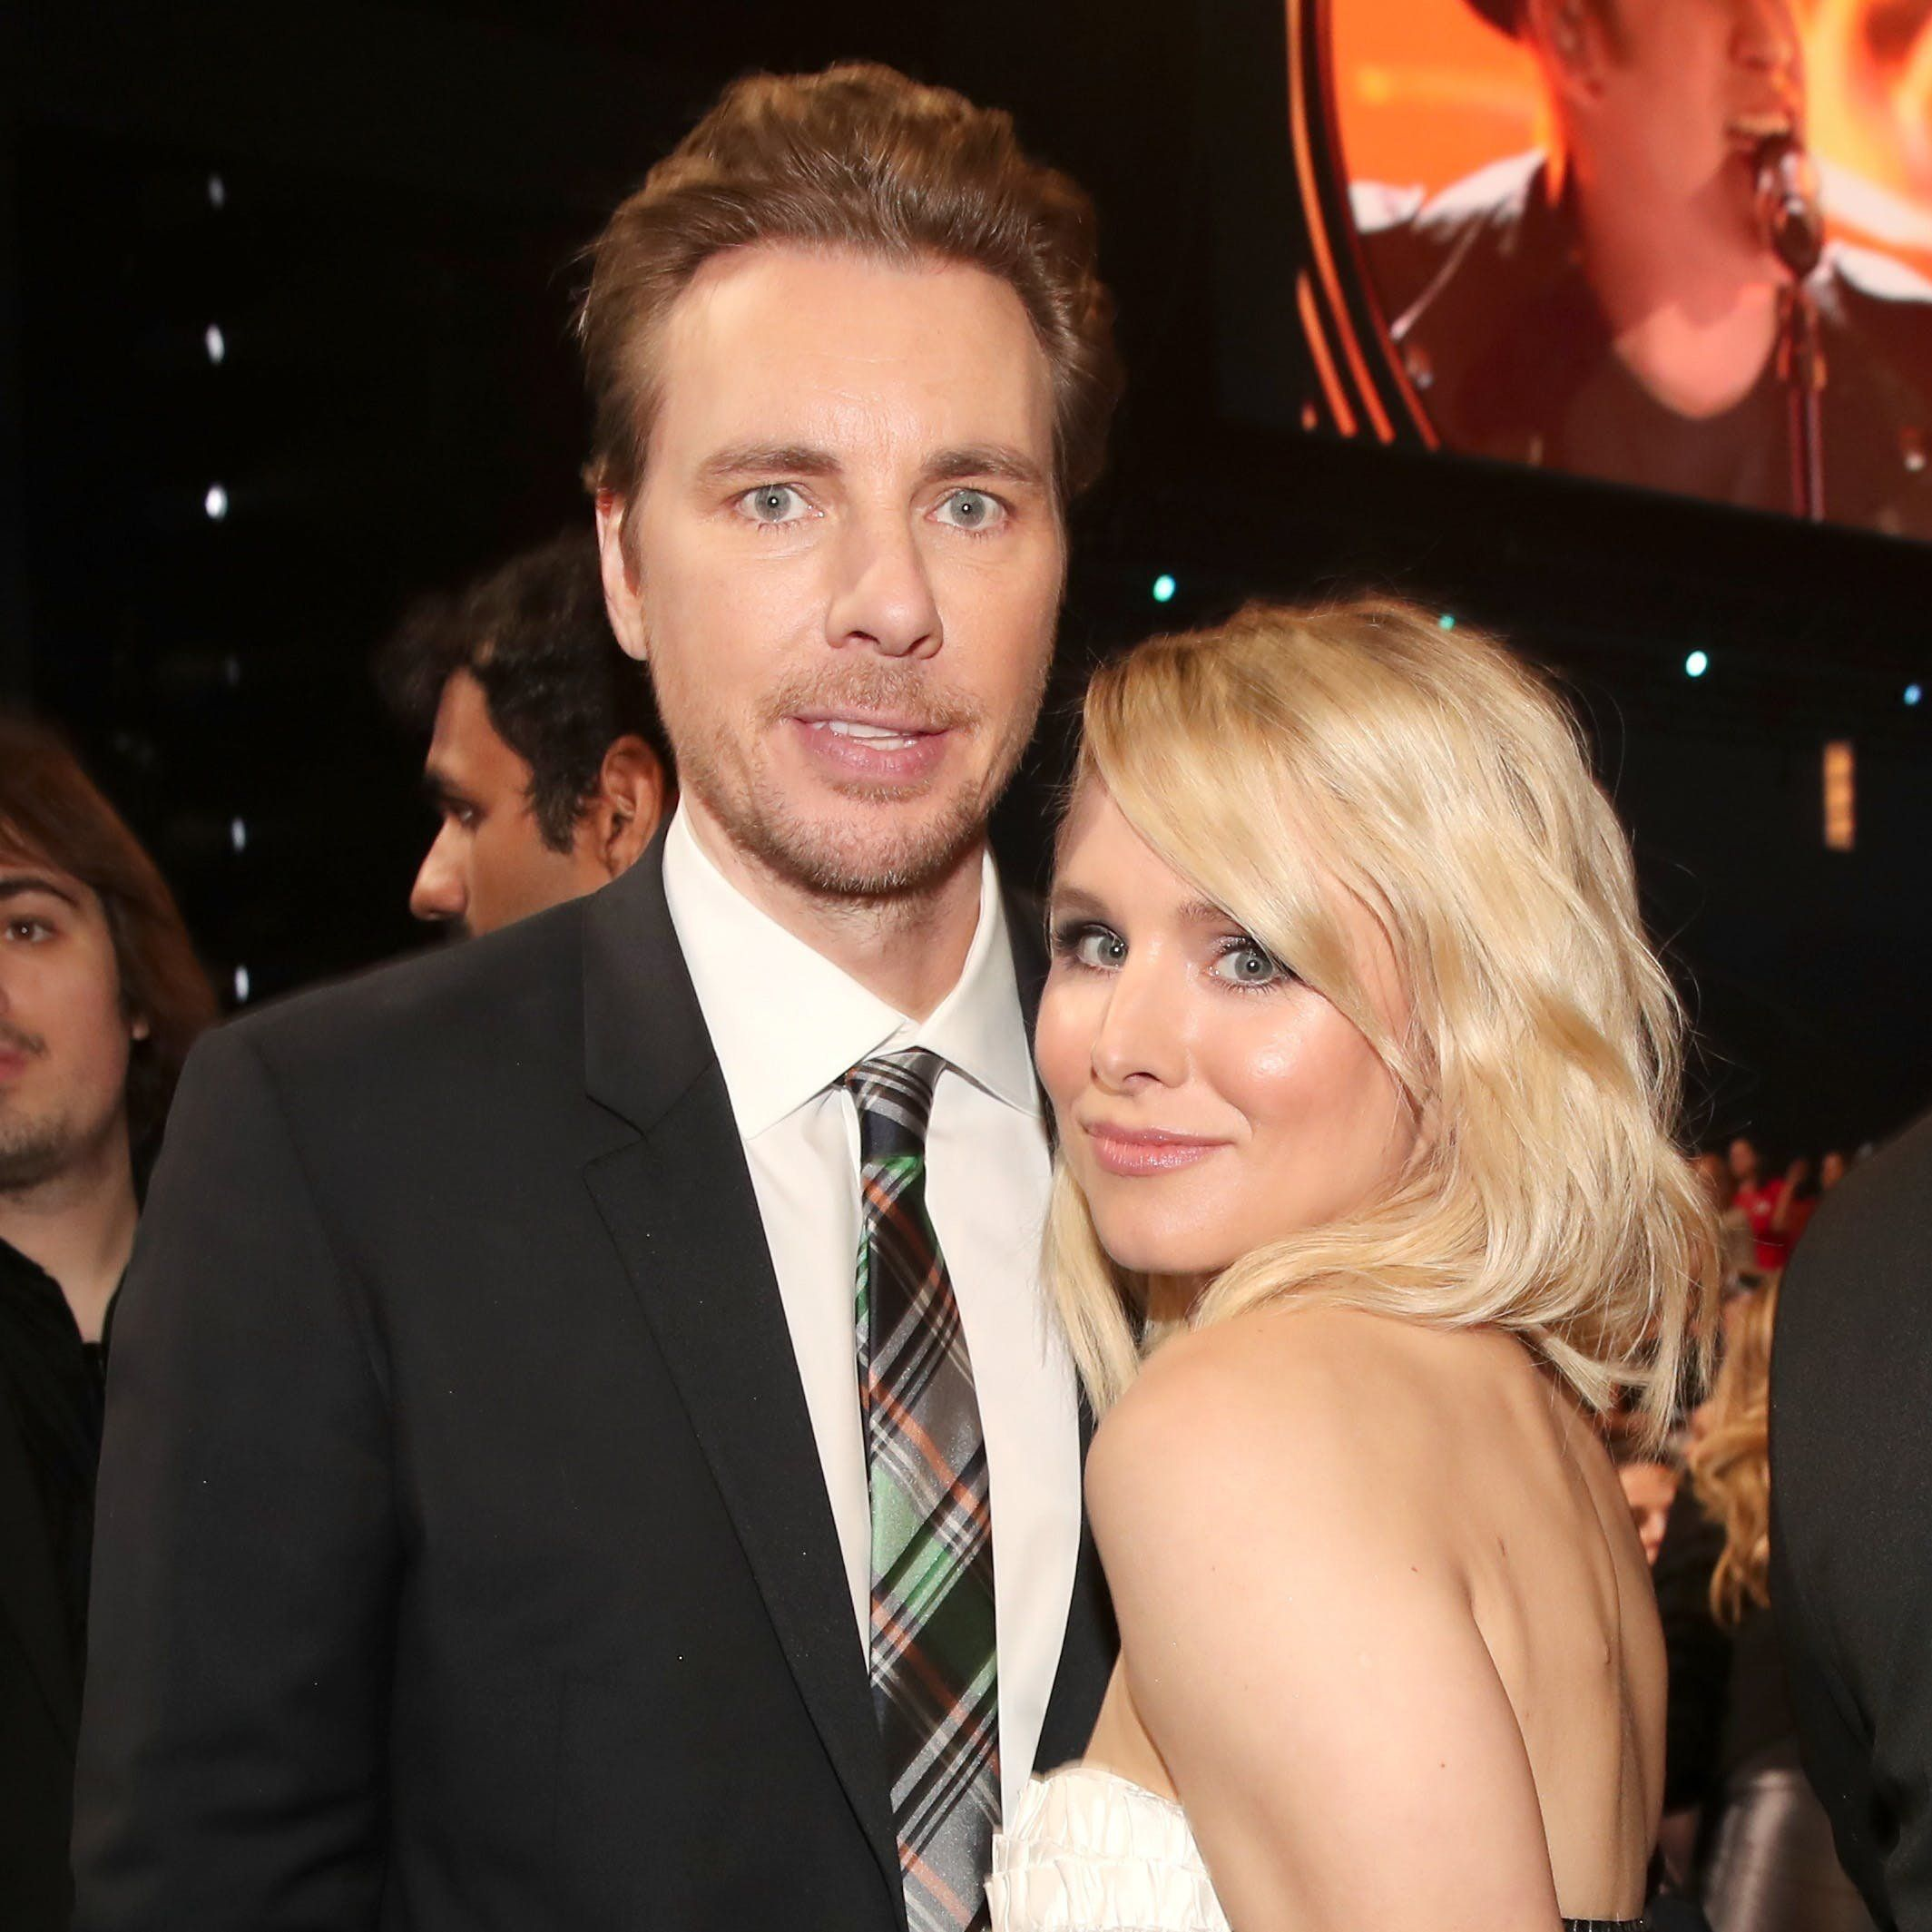 Dax Shepard DENIES Cheating On Kristen Bell!